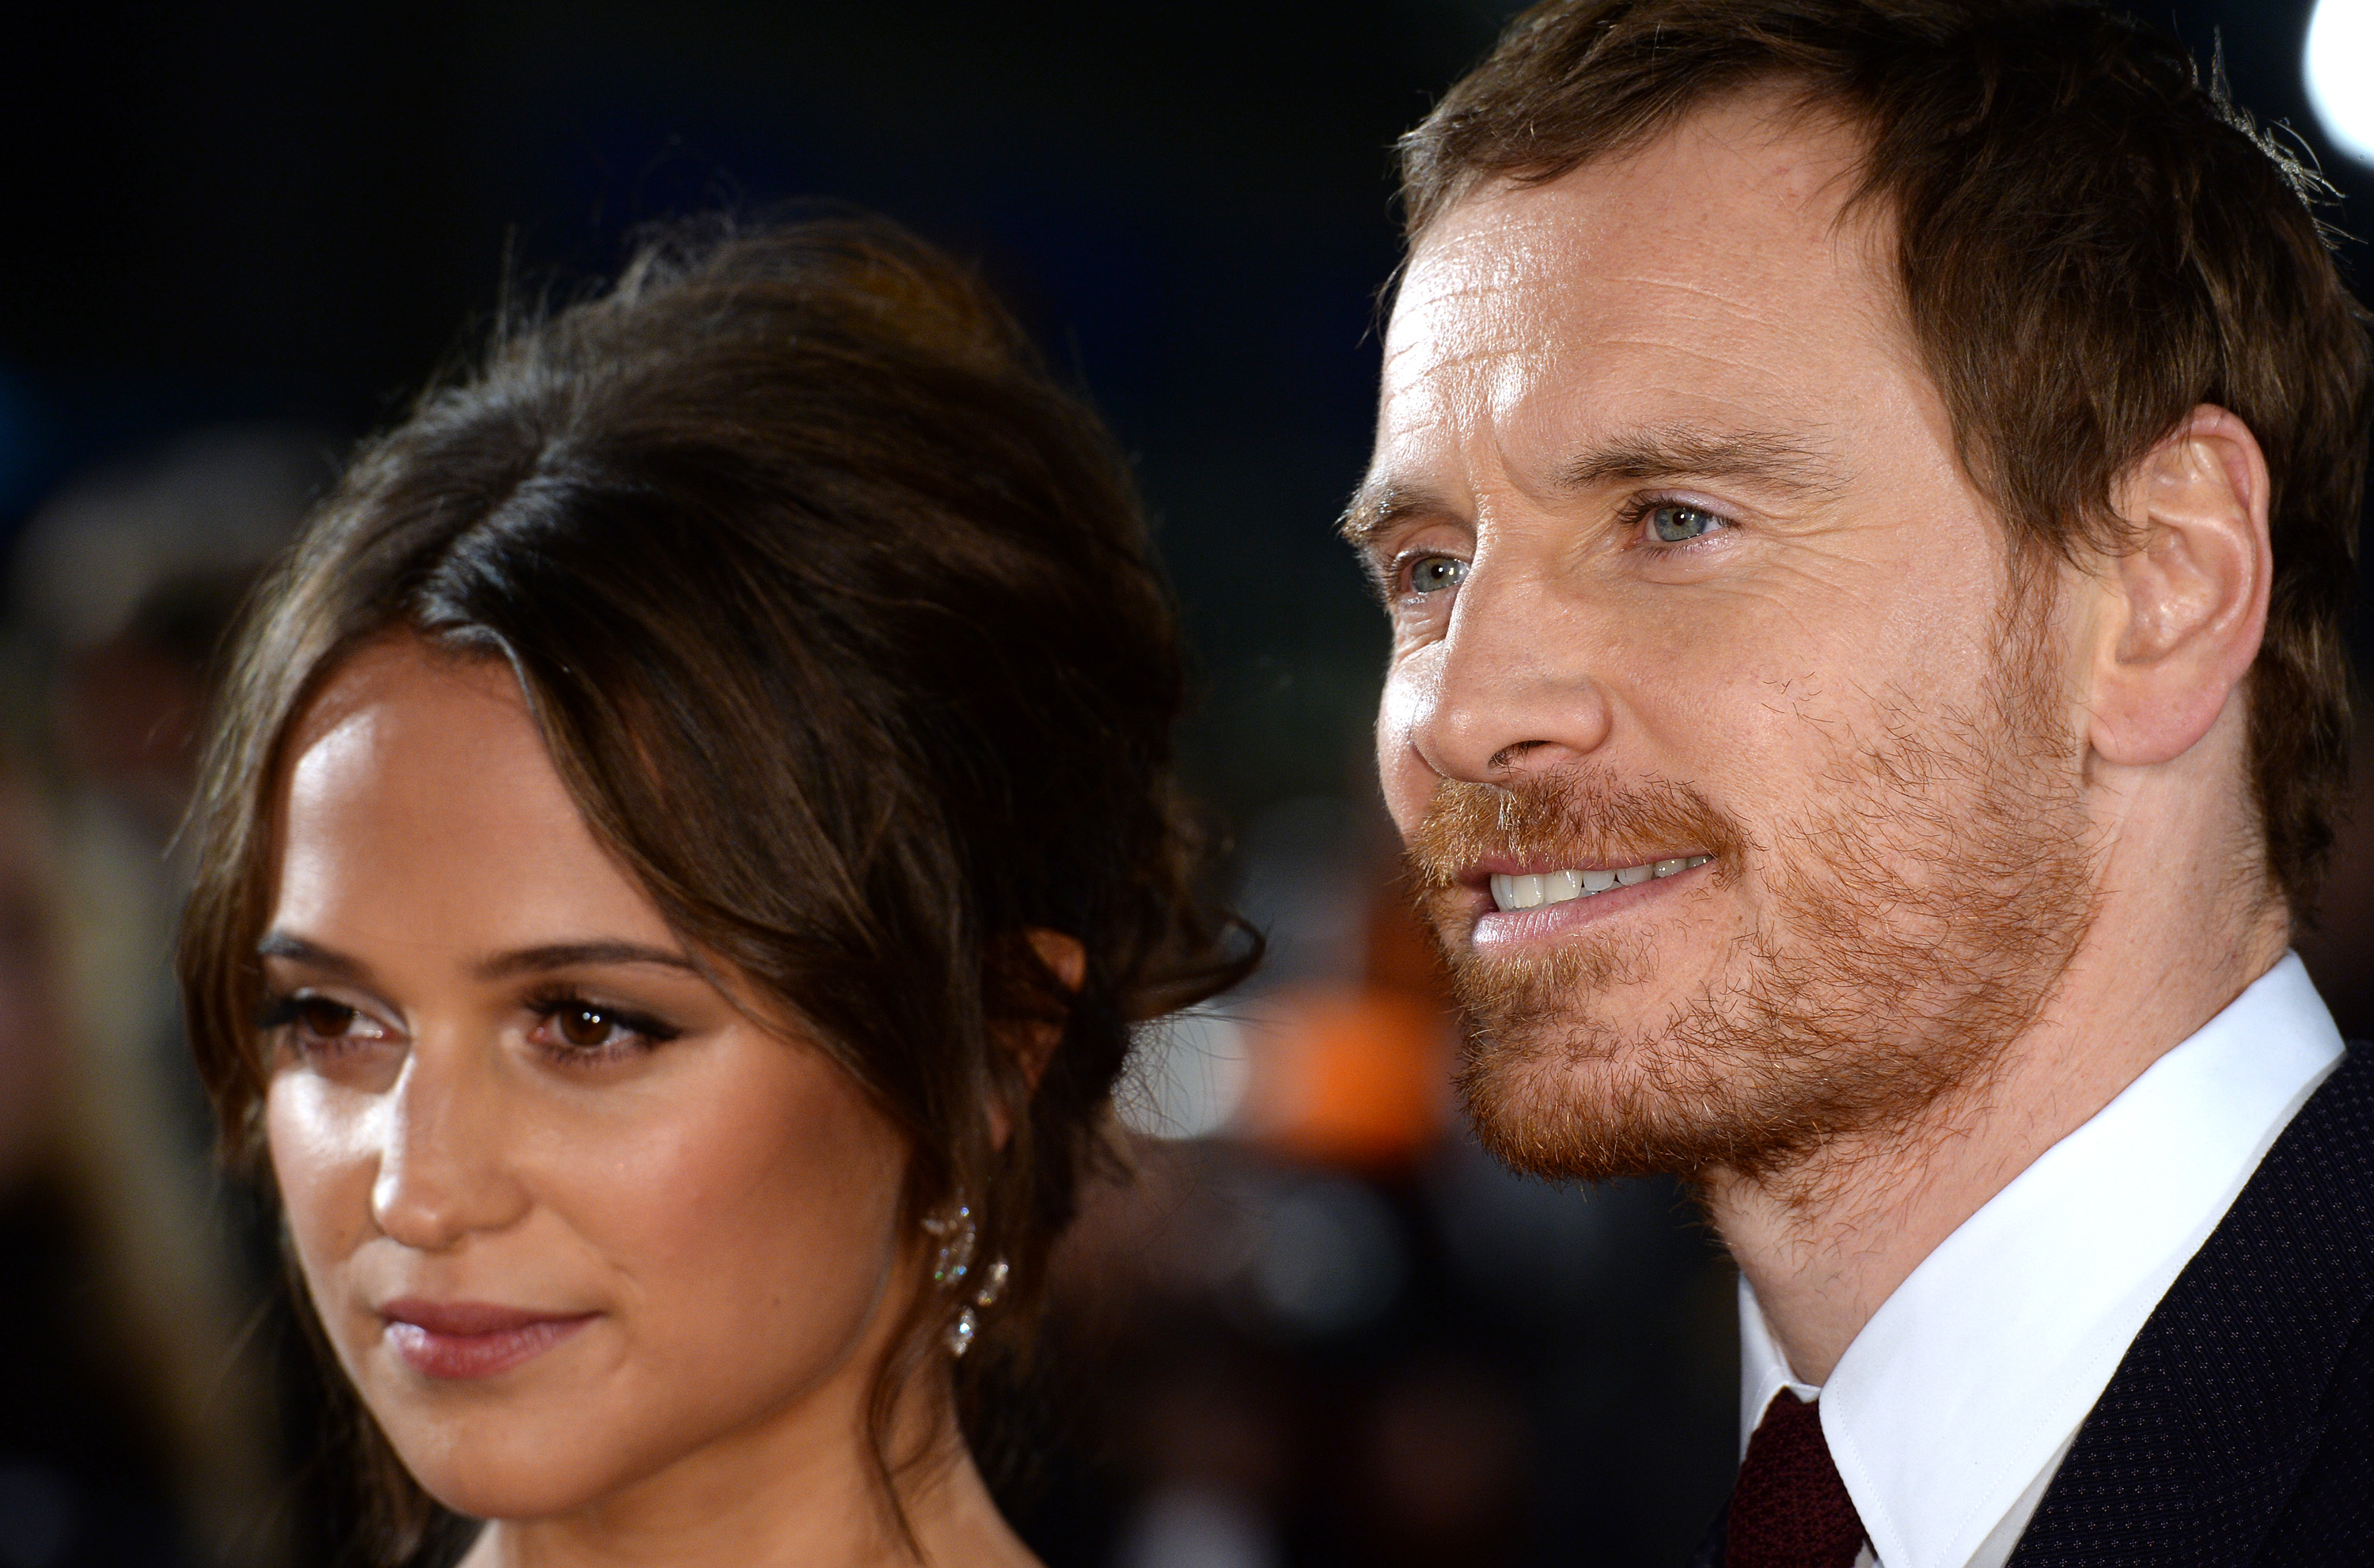 Michael Fassbender and Alicia Vikander arrive for the UK premiere of  The Light Between Oceans  at The Curzon Mayfair on October 19, 2016 in London, England.